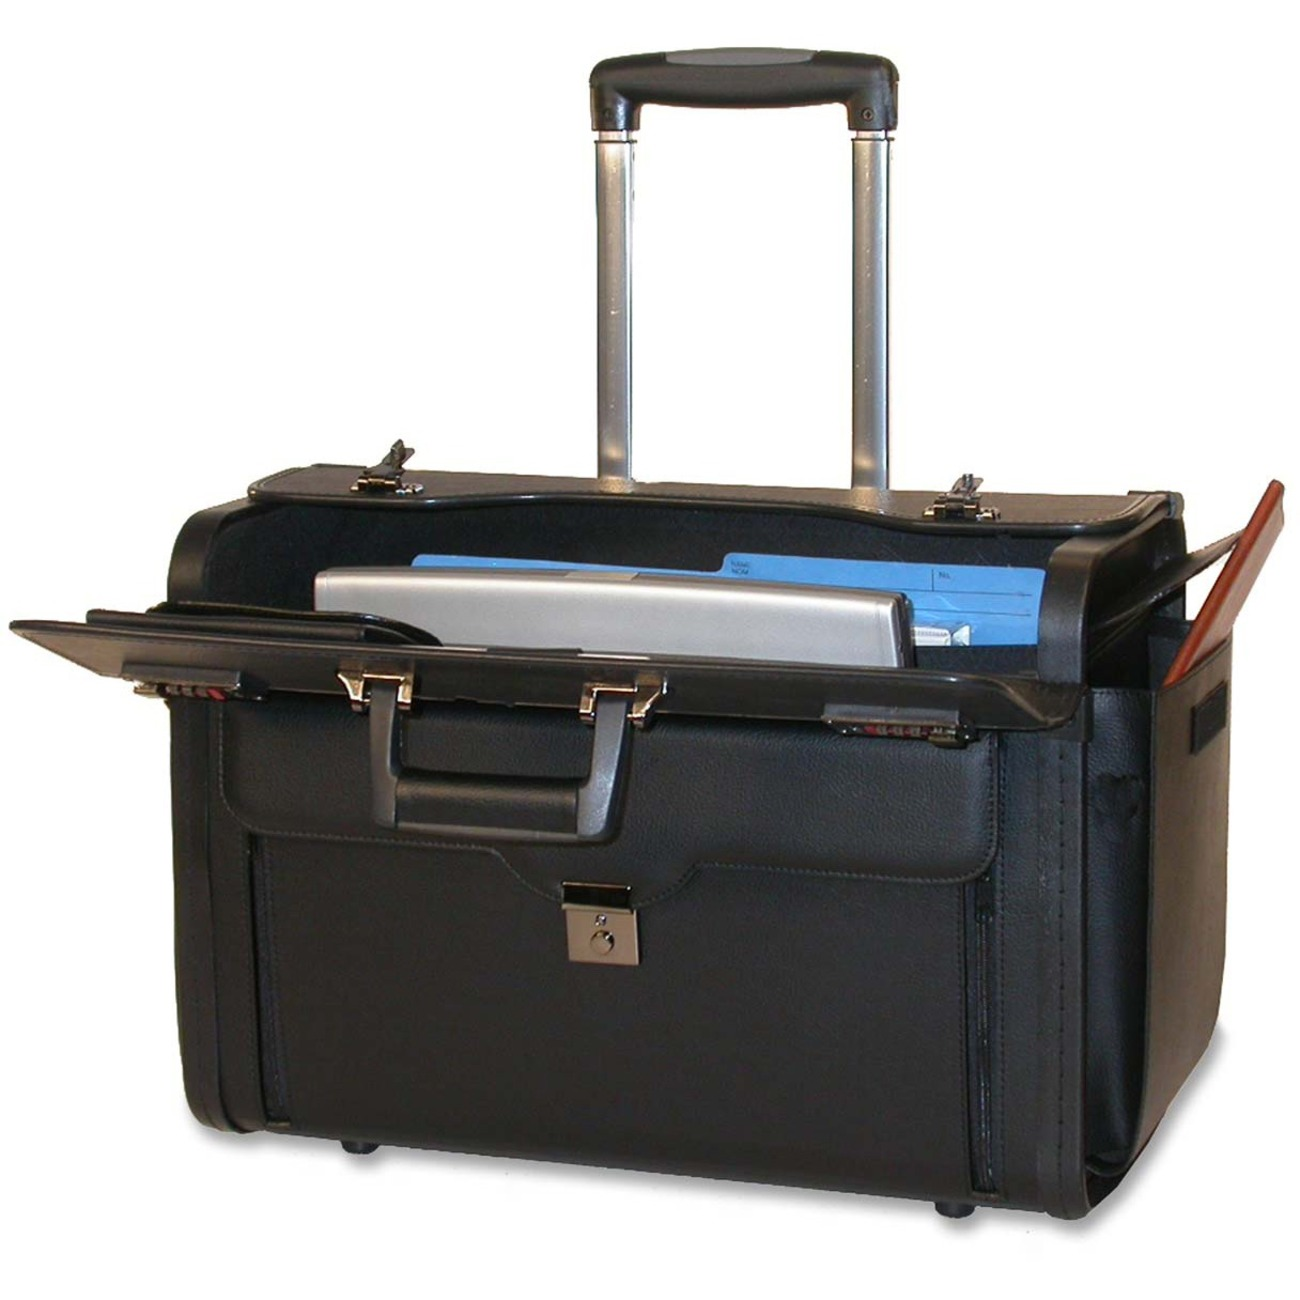 case alabama office supply Witcher office supply categorized in office supplies is located at 1000 highway 78 e,jasper, al, us - 35501 browse for more office supplies companies in jasper.